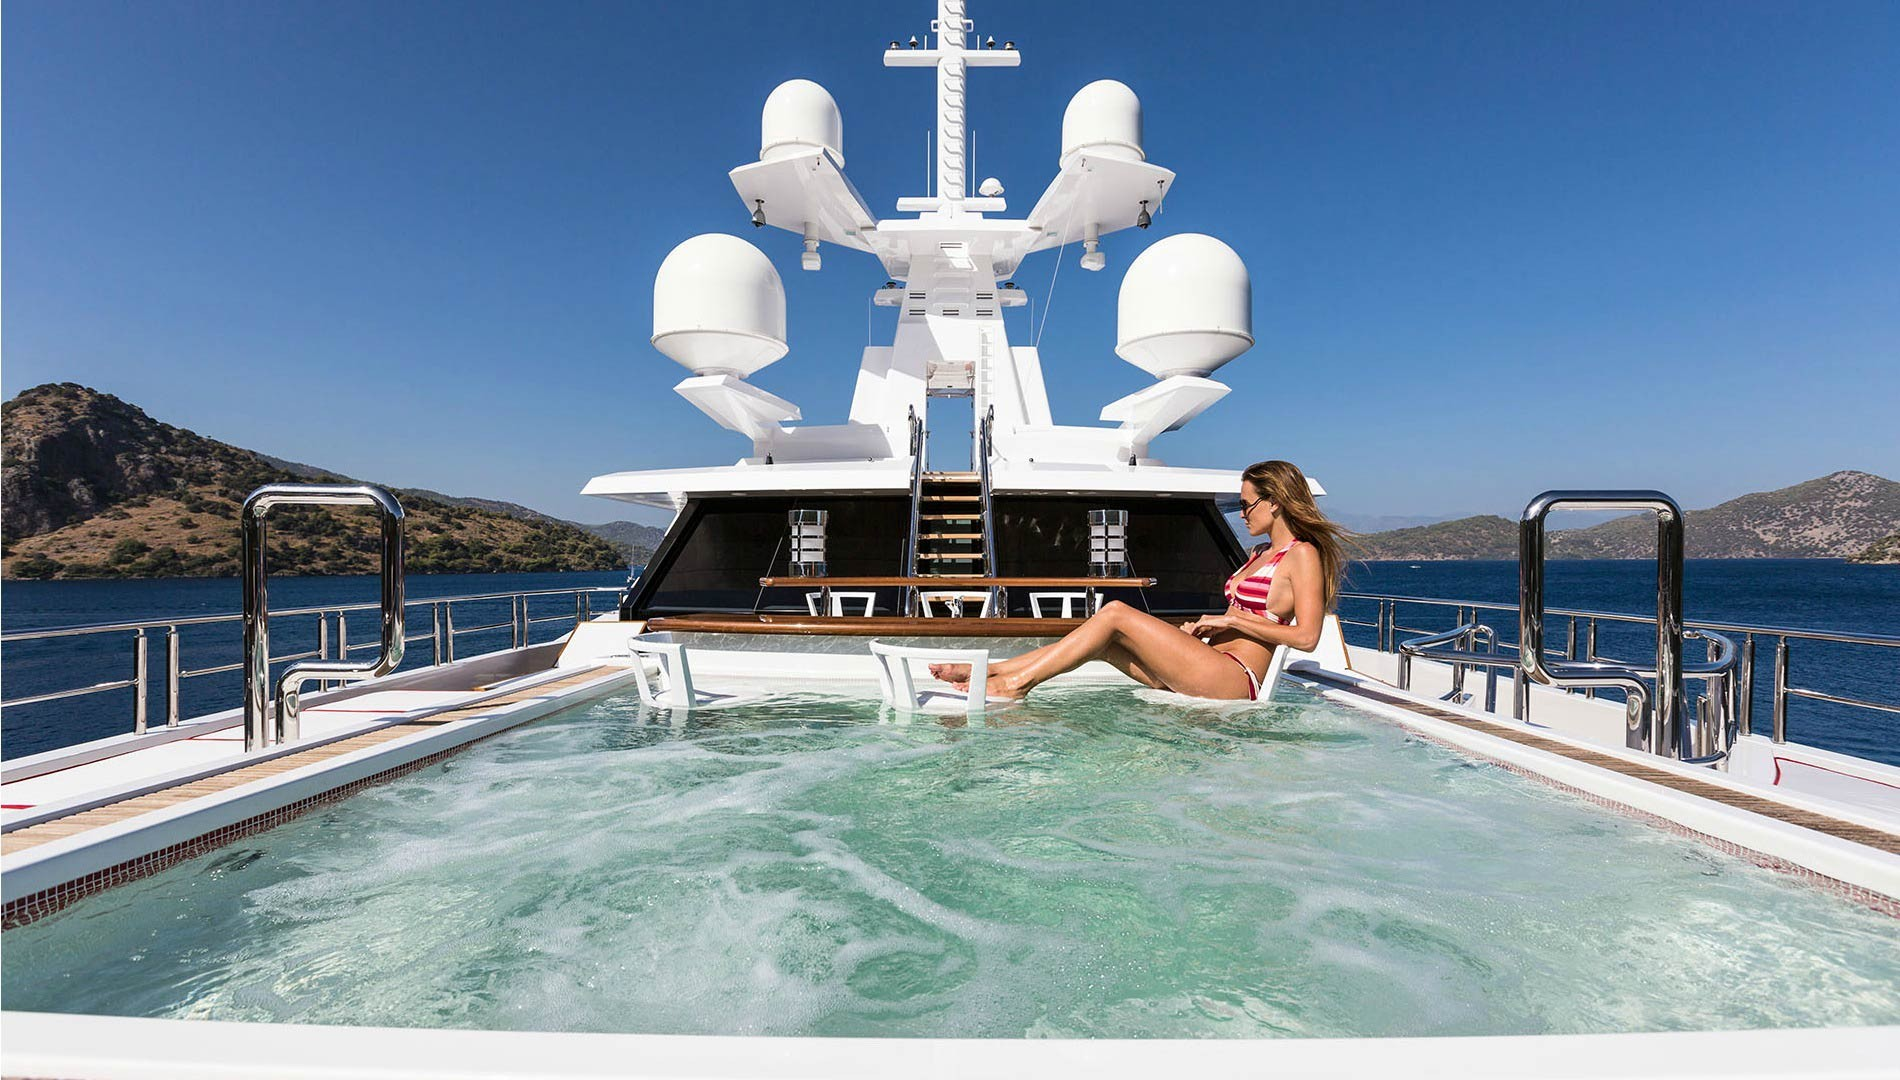 Ten largest superyachts to turn heads at 29th annual yacht for Miami beach jewelry watch show